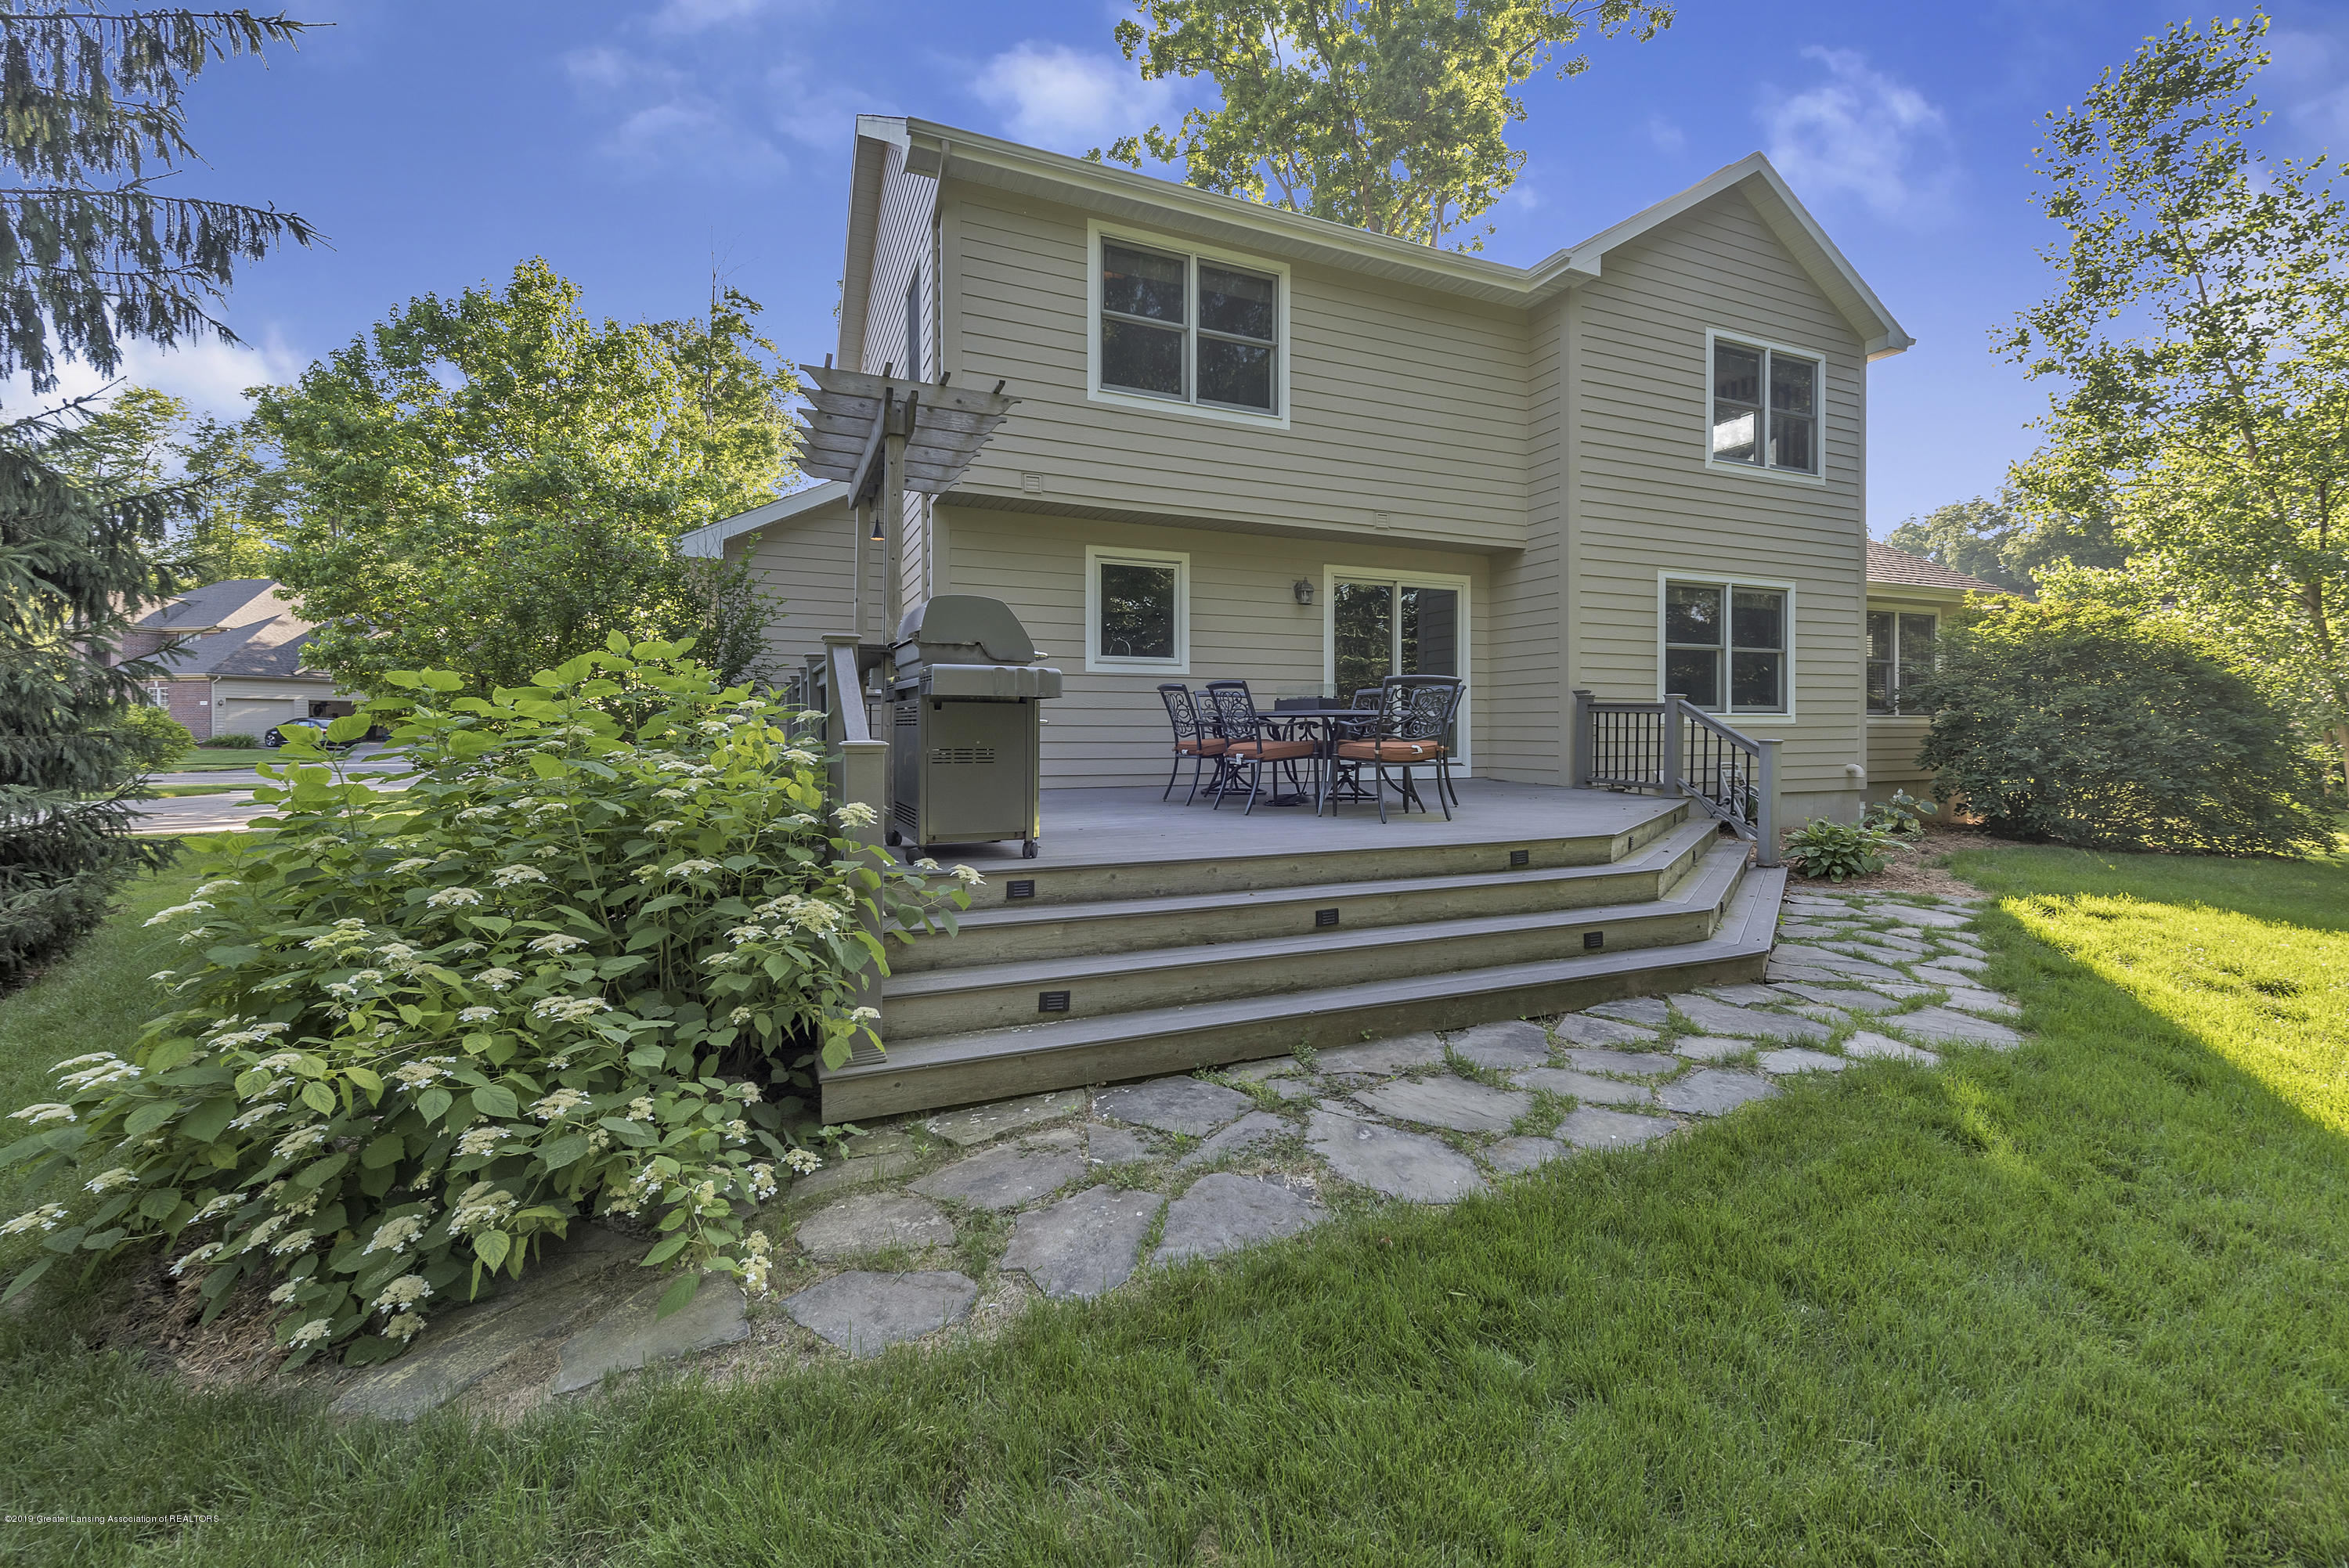 1058 Buckingham Rd - Deck and Patio - 41